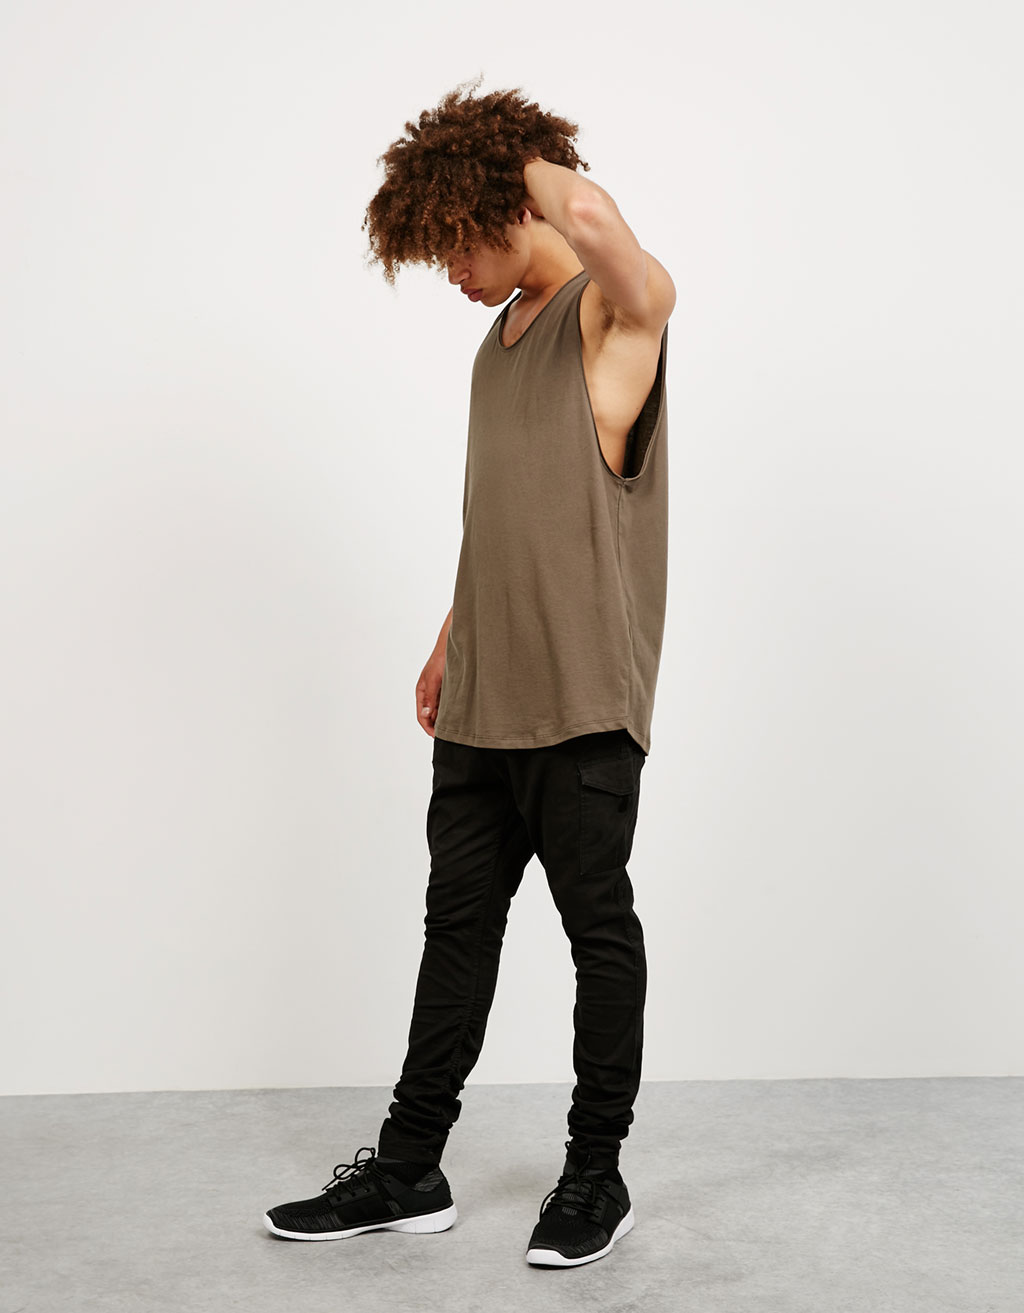 Wide sleeveless top